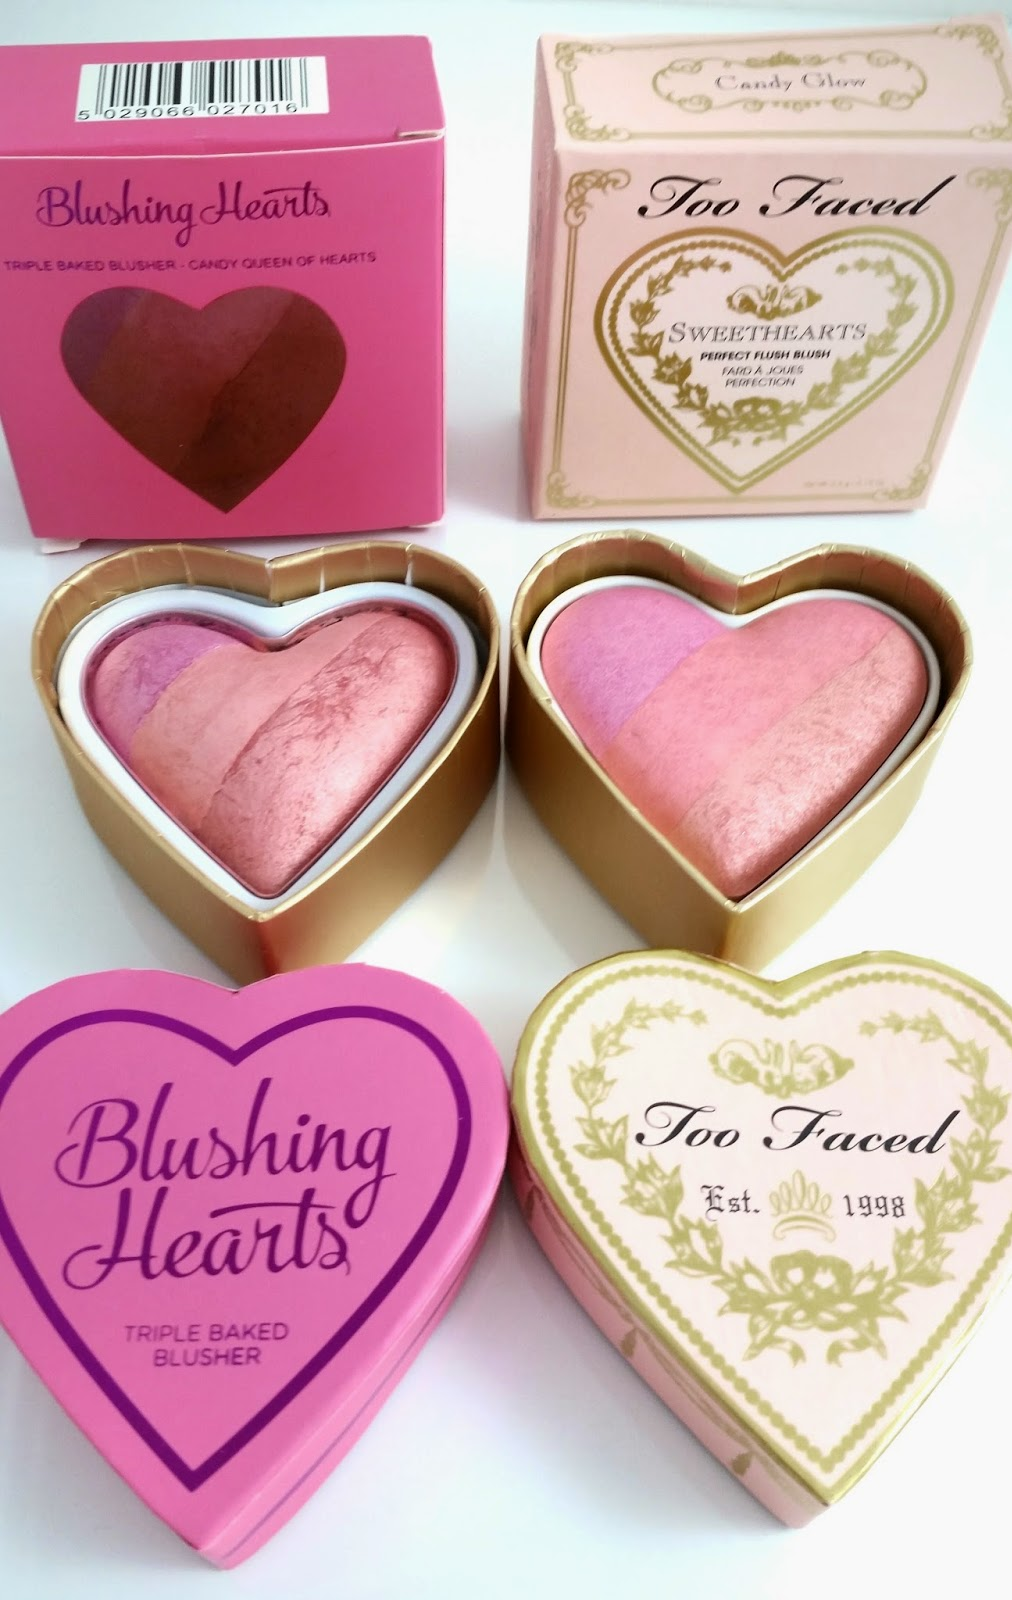 Too Faced Sweethearts Blush Dupe Makeup Revolution